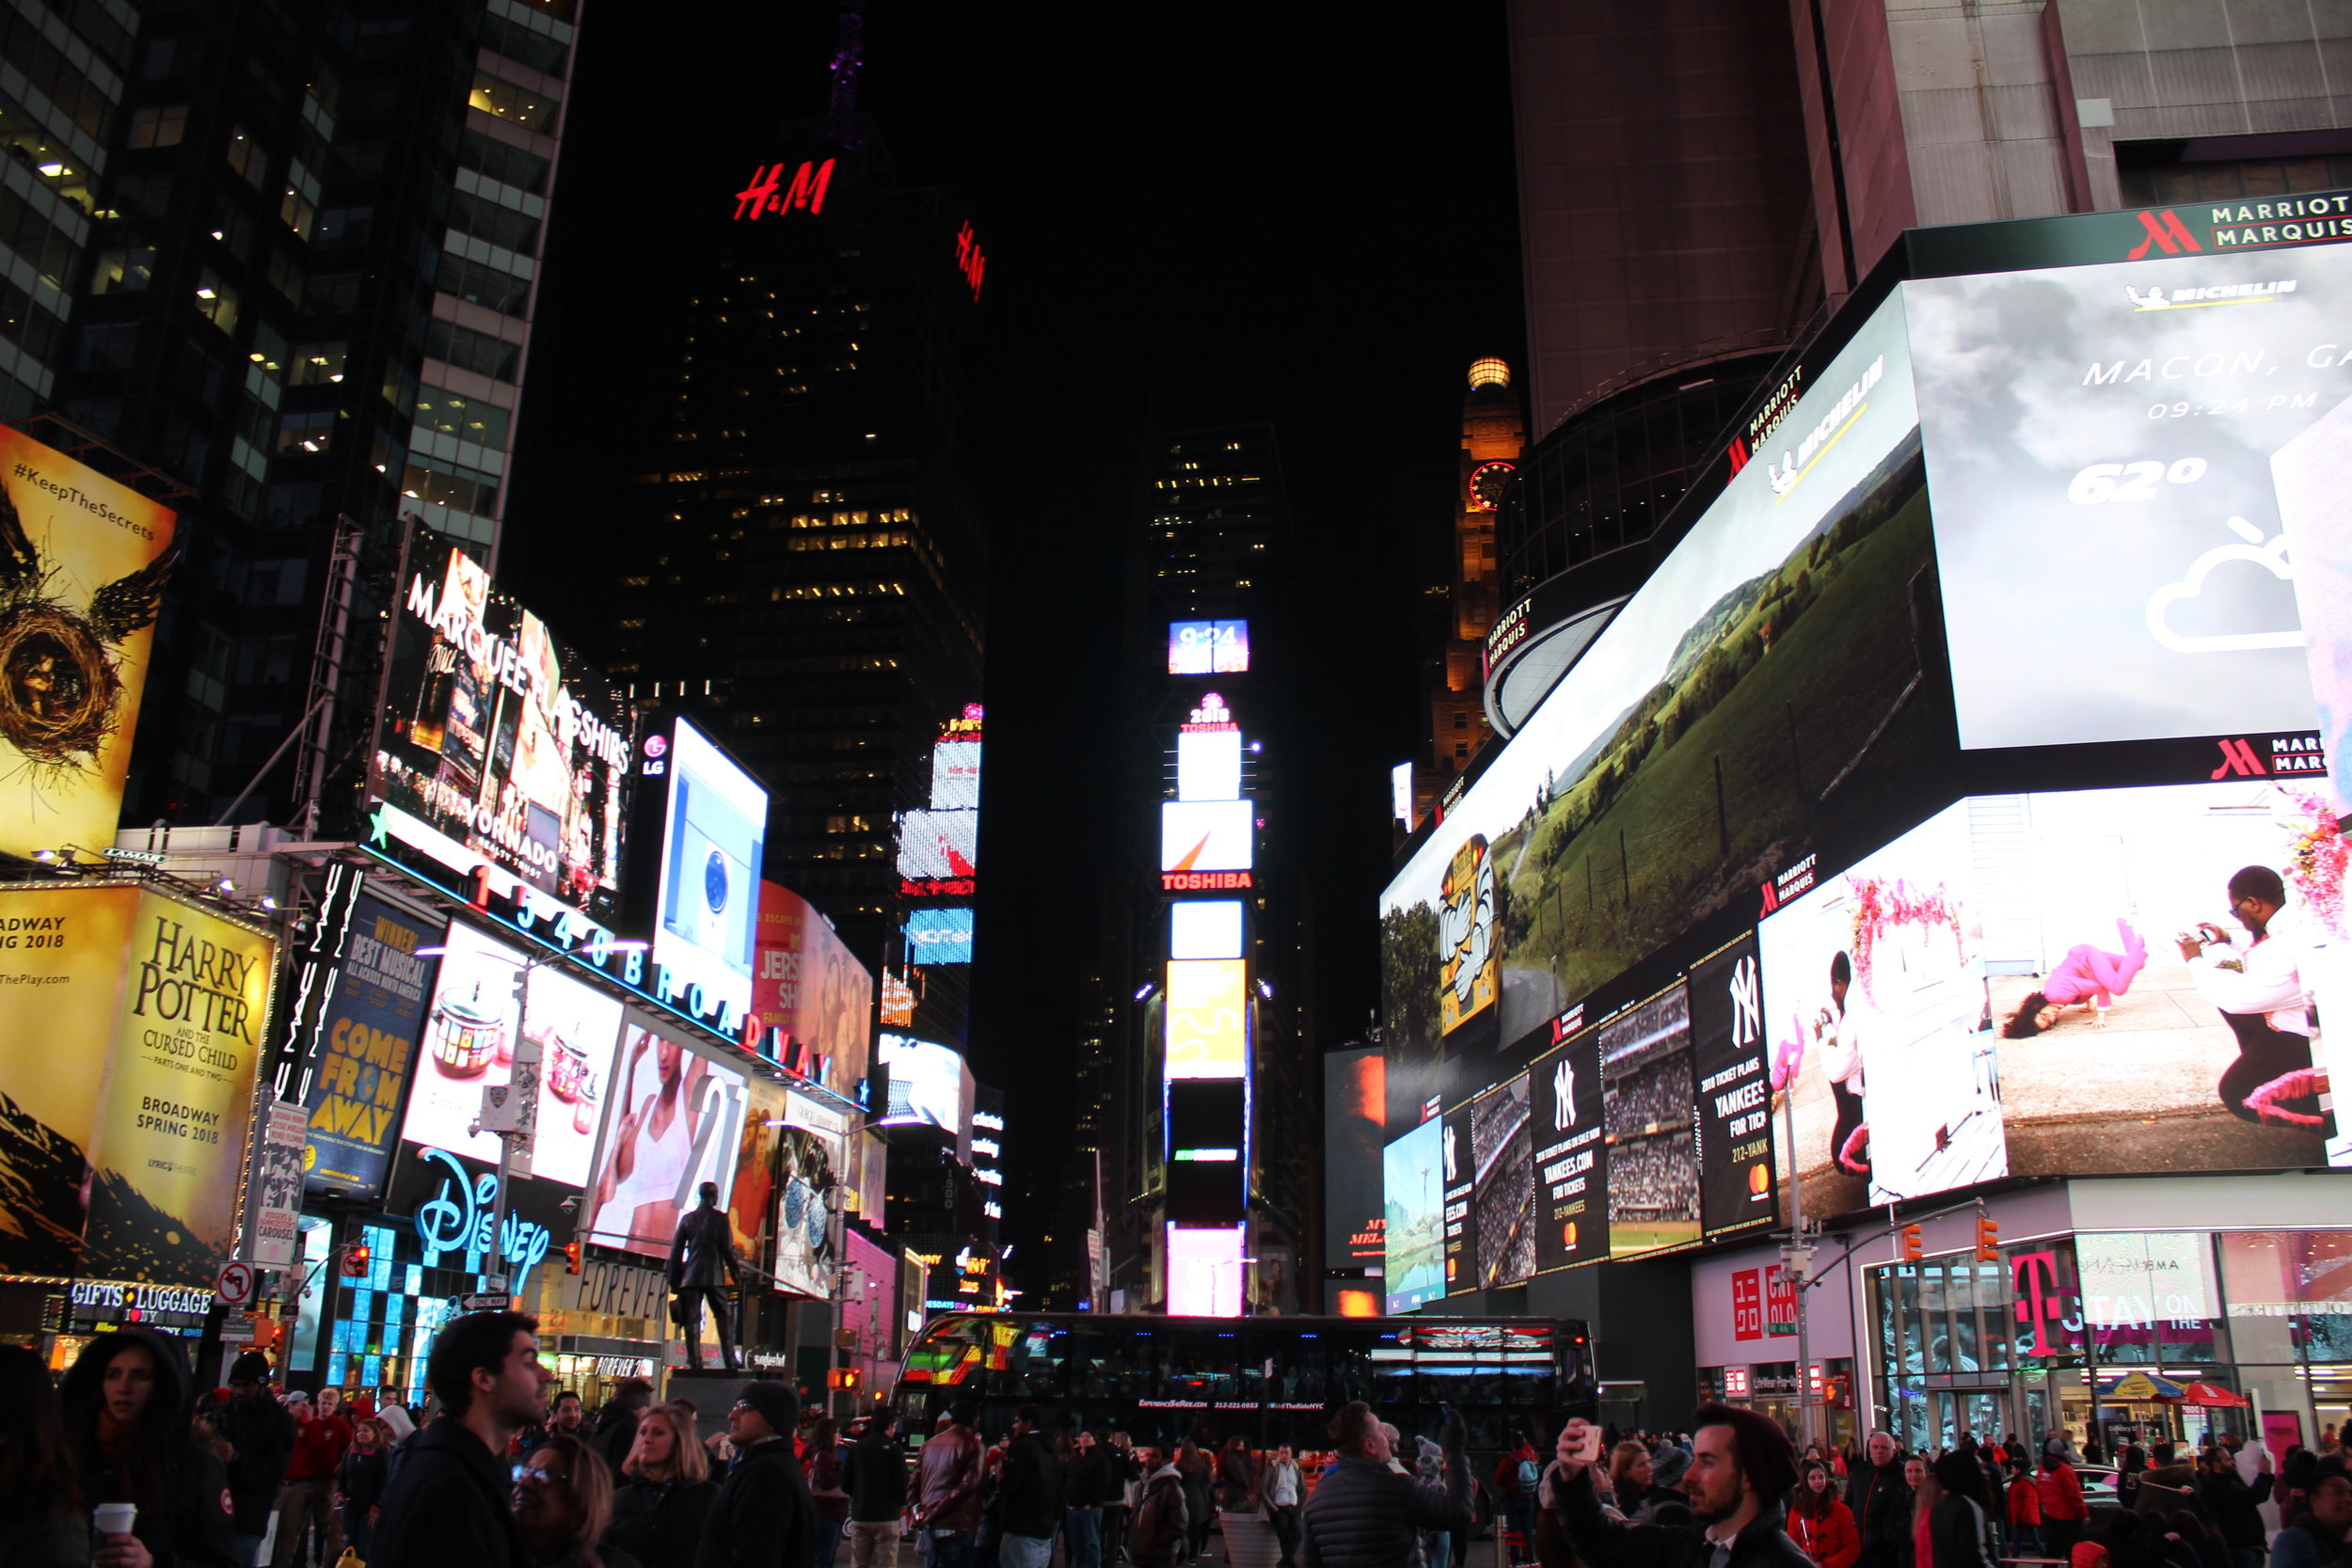 FYI... - Just as an FYI and for future reference, if you've been feeling anxious throughout the day, try to avoid super crowded, loud, brightly lit, and overwhelming tourist attractions.